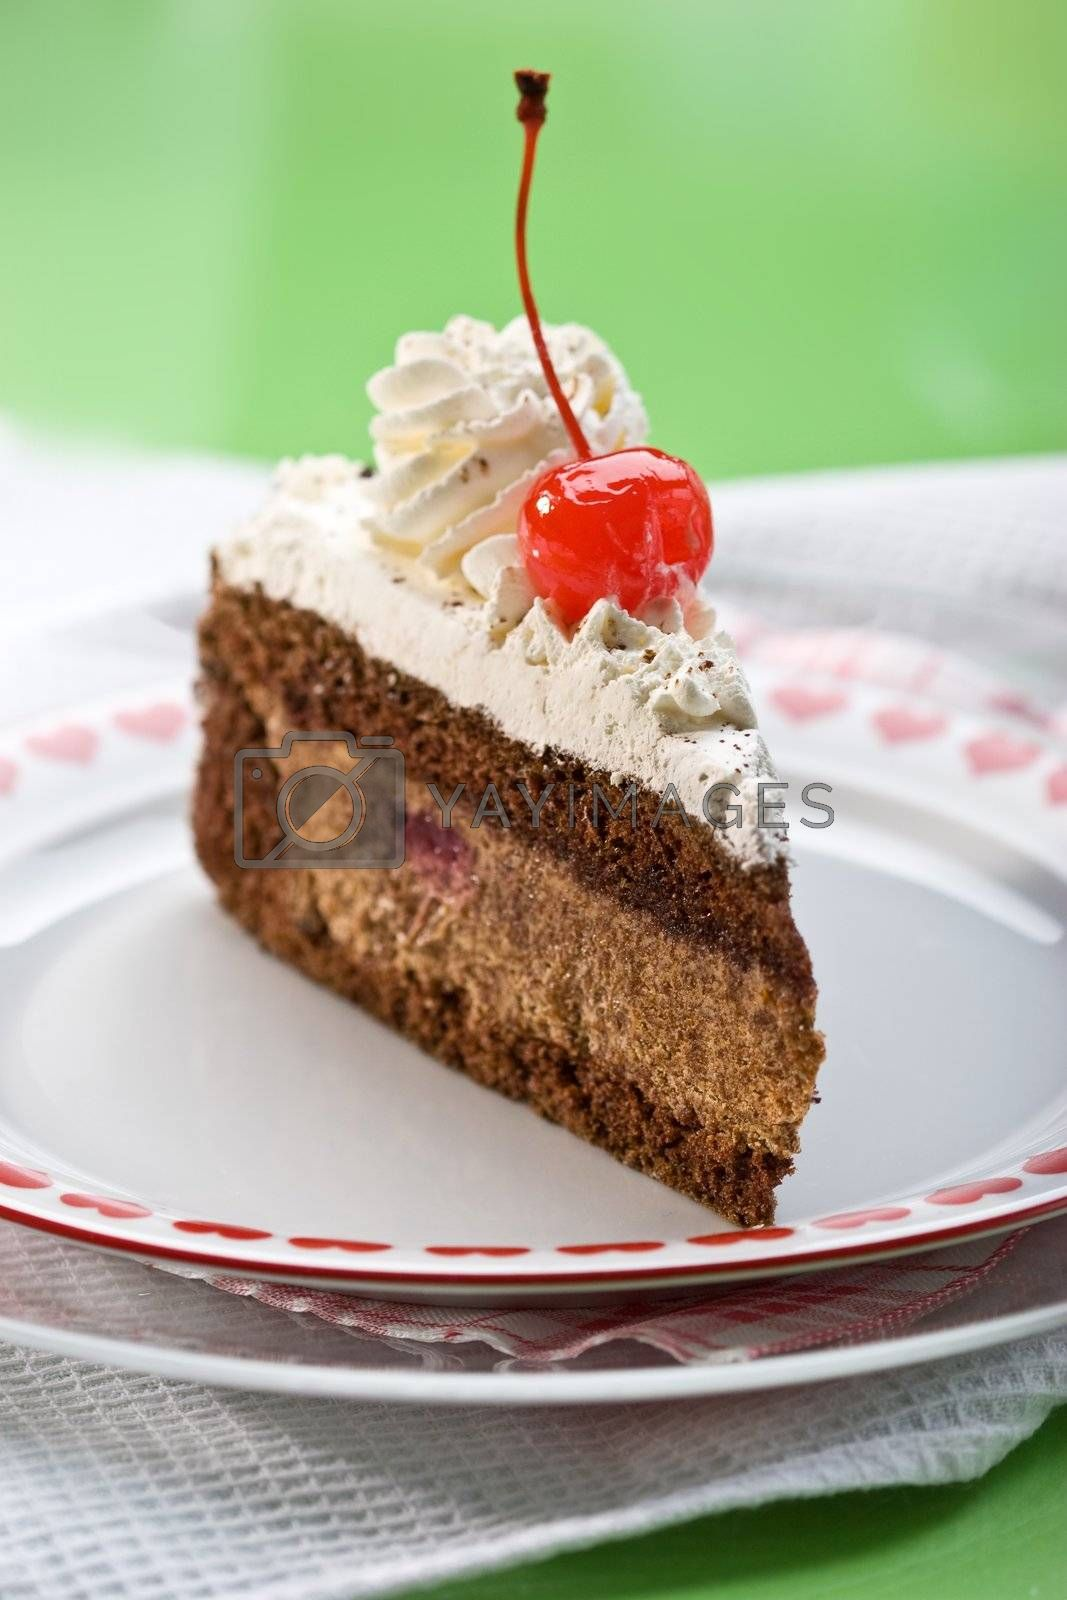 Royalty free image of chocolate cake by agg